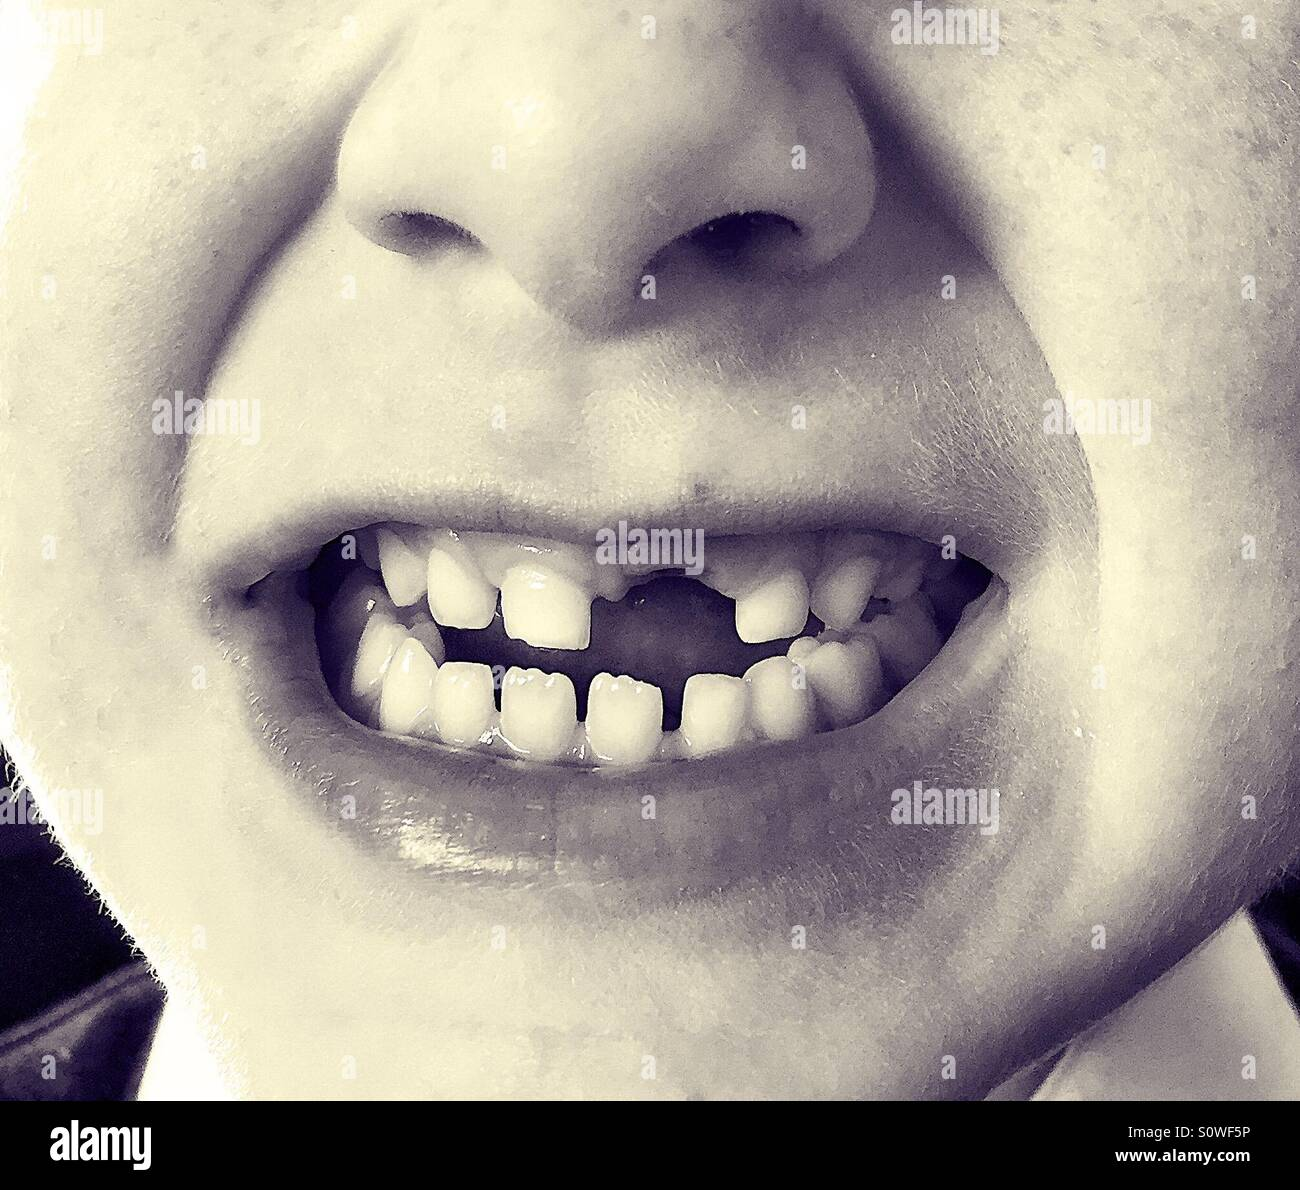 Child's missing front tooth. - Stock Image